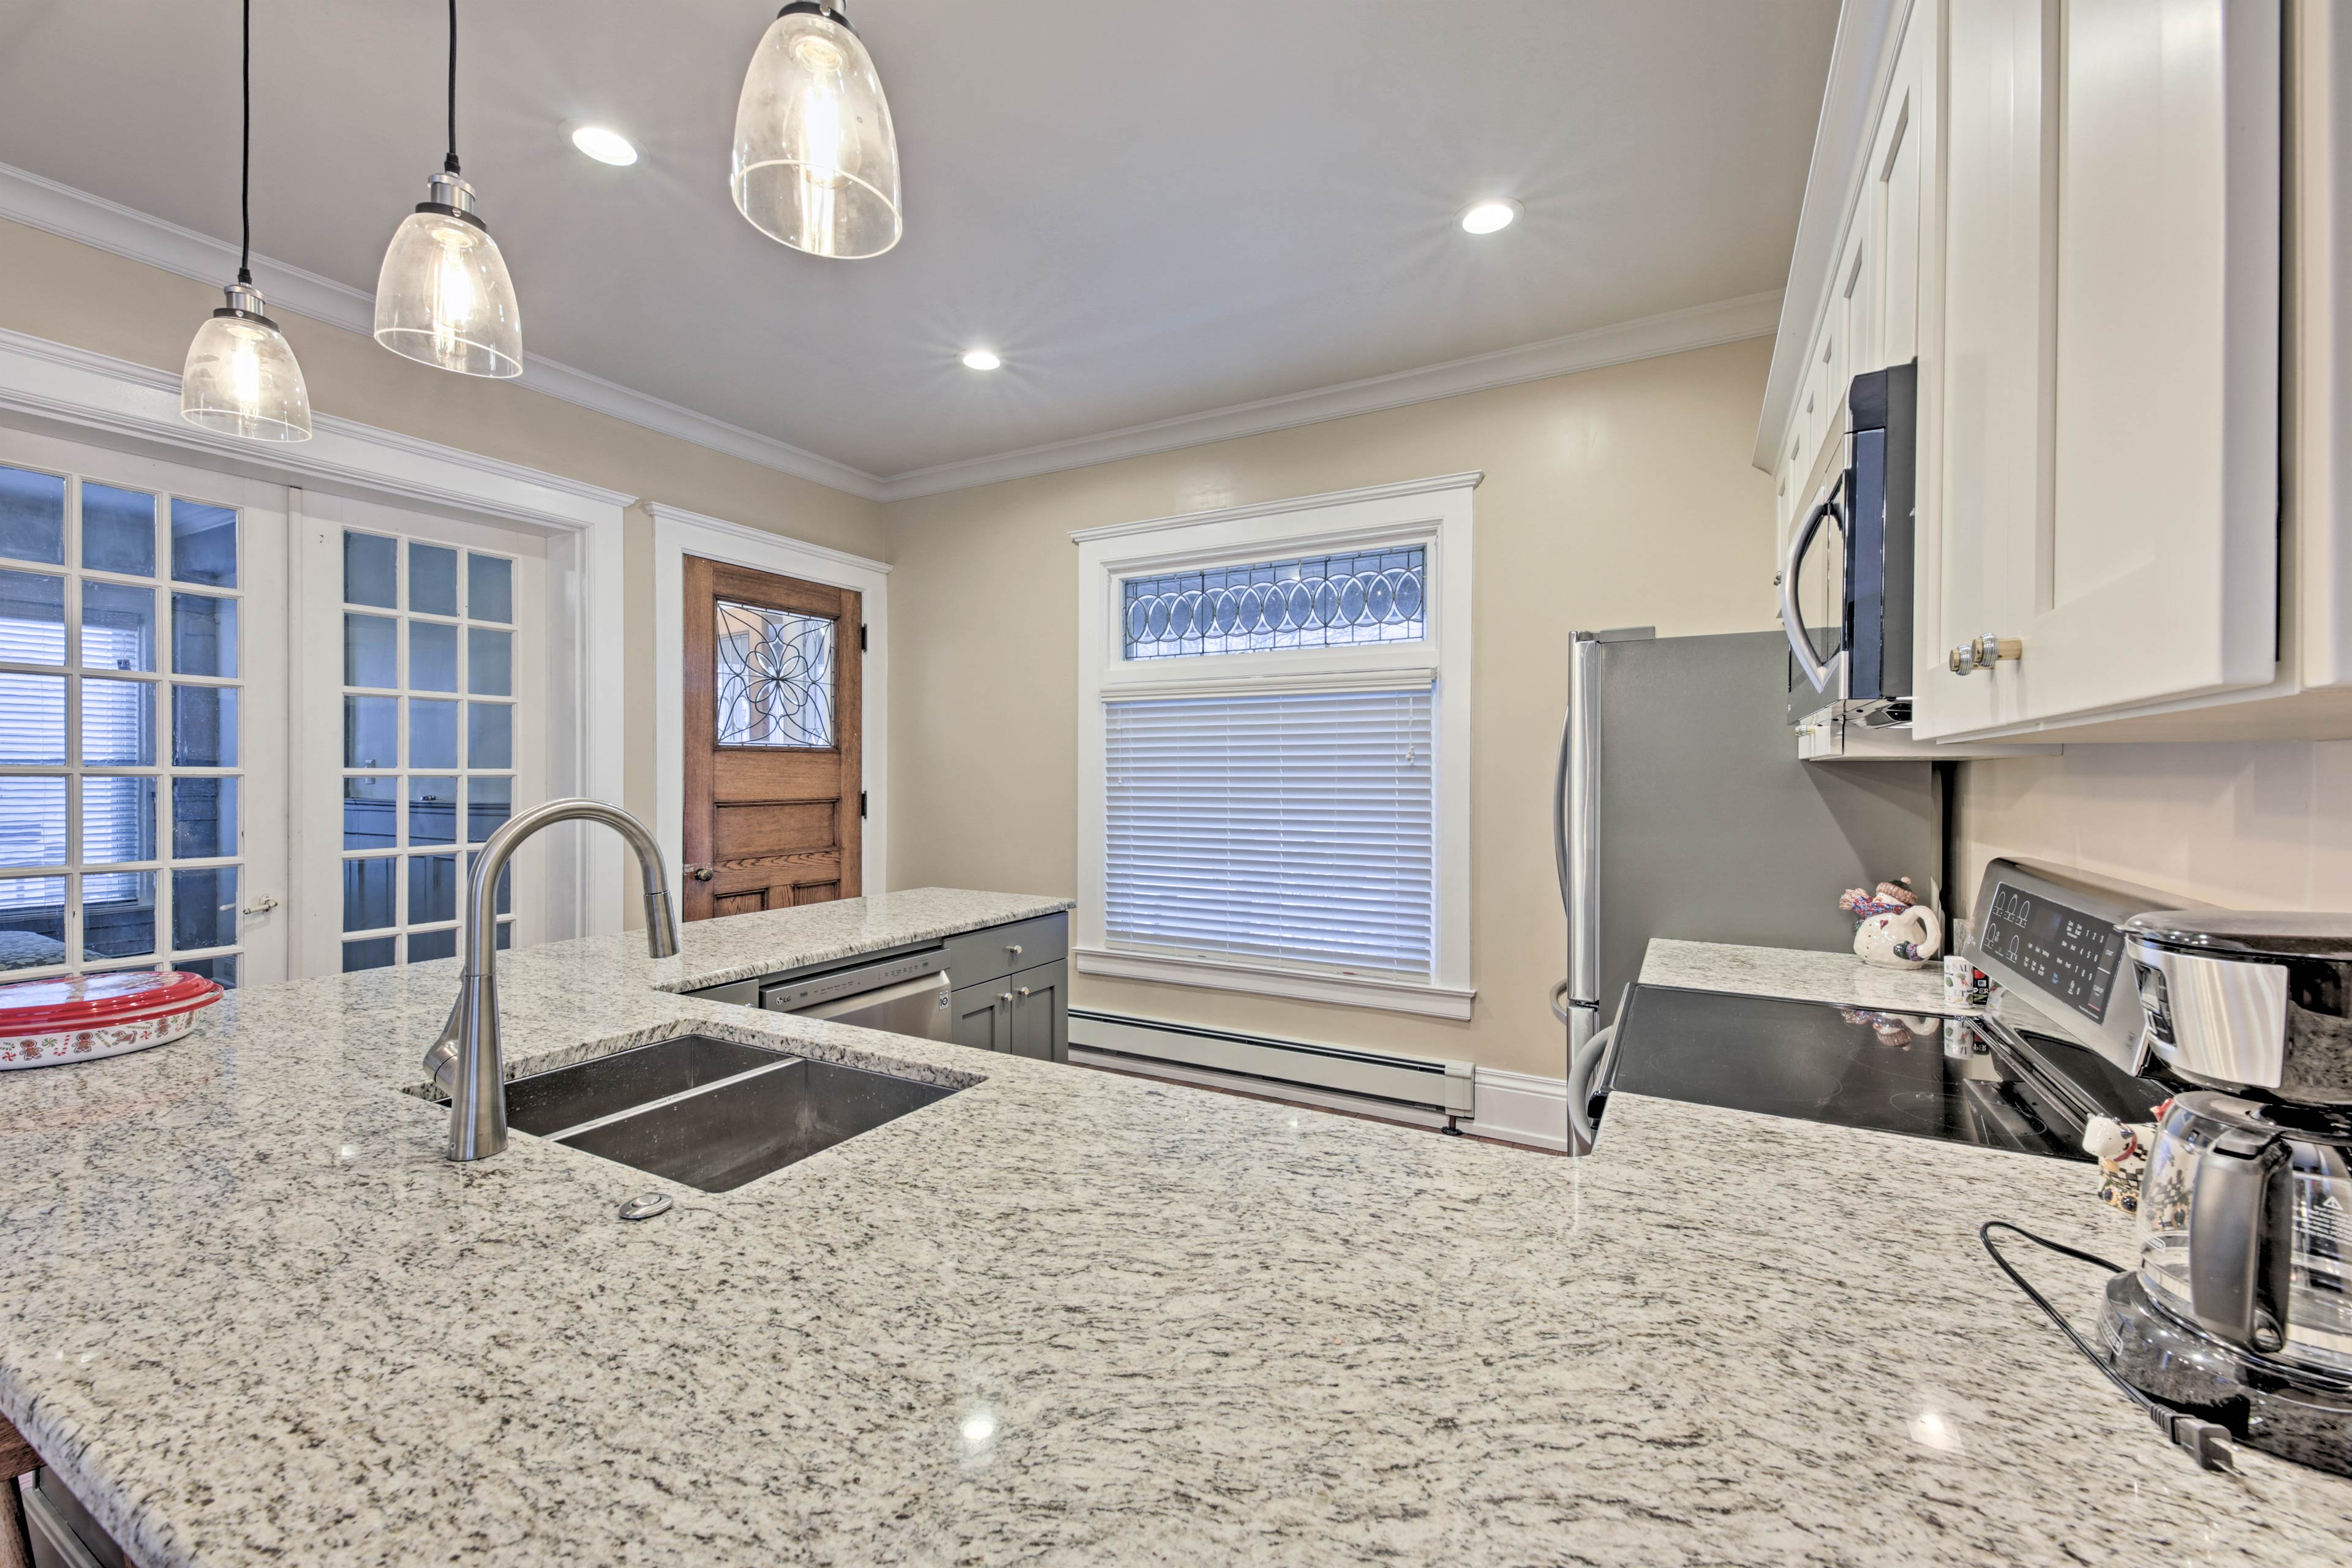 The kitchen is fully equipped with all modern amenities and cookware you'll need